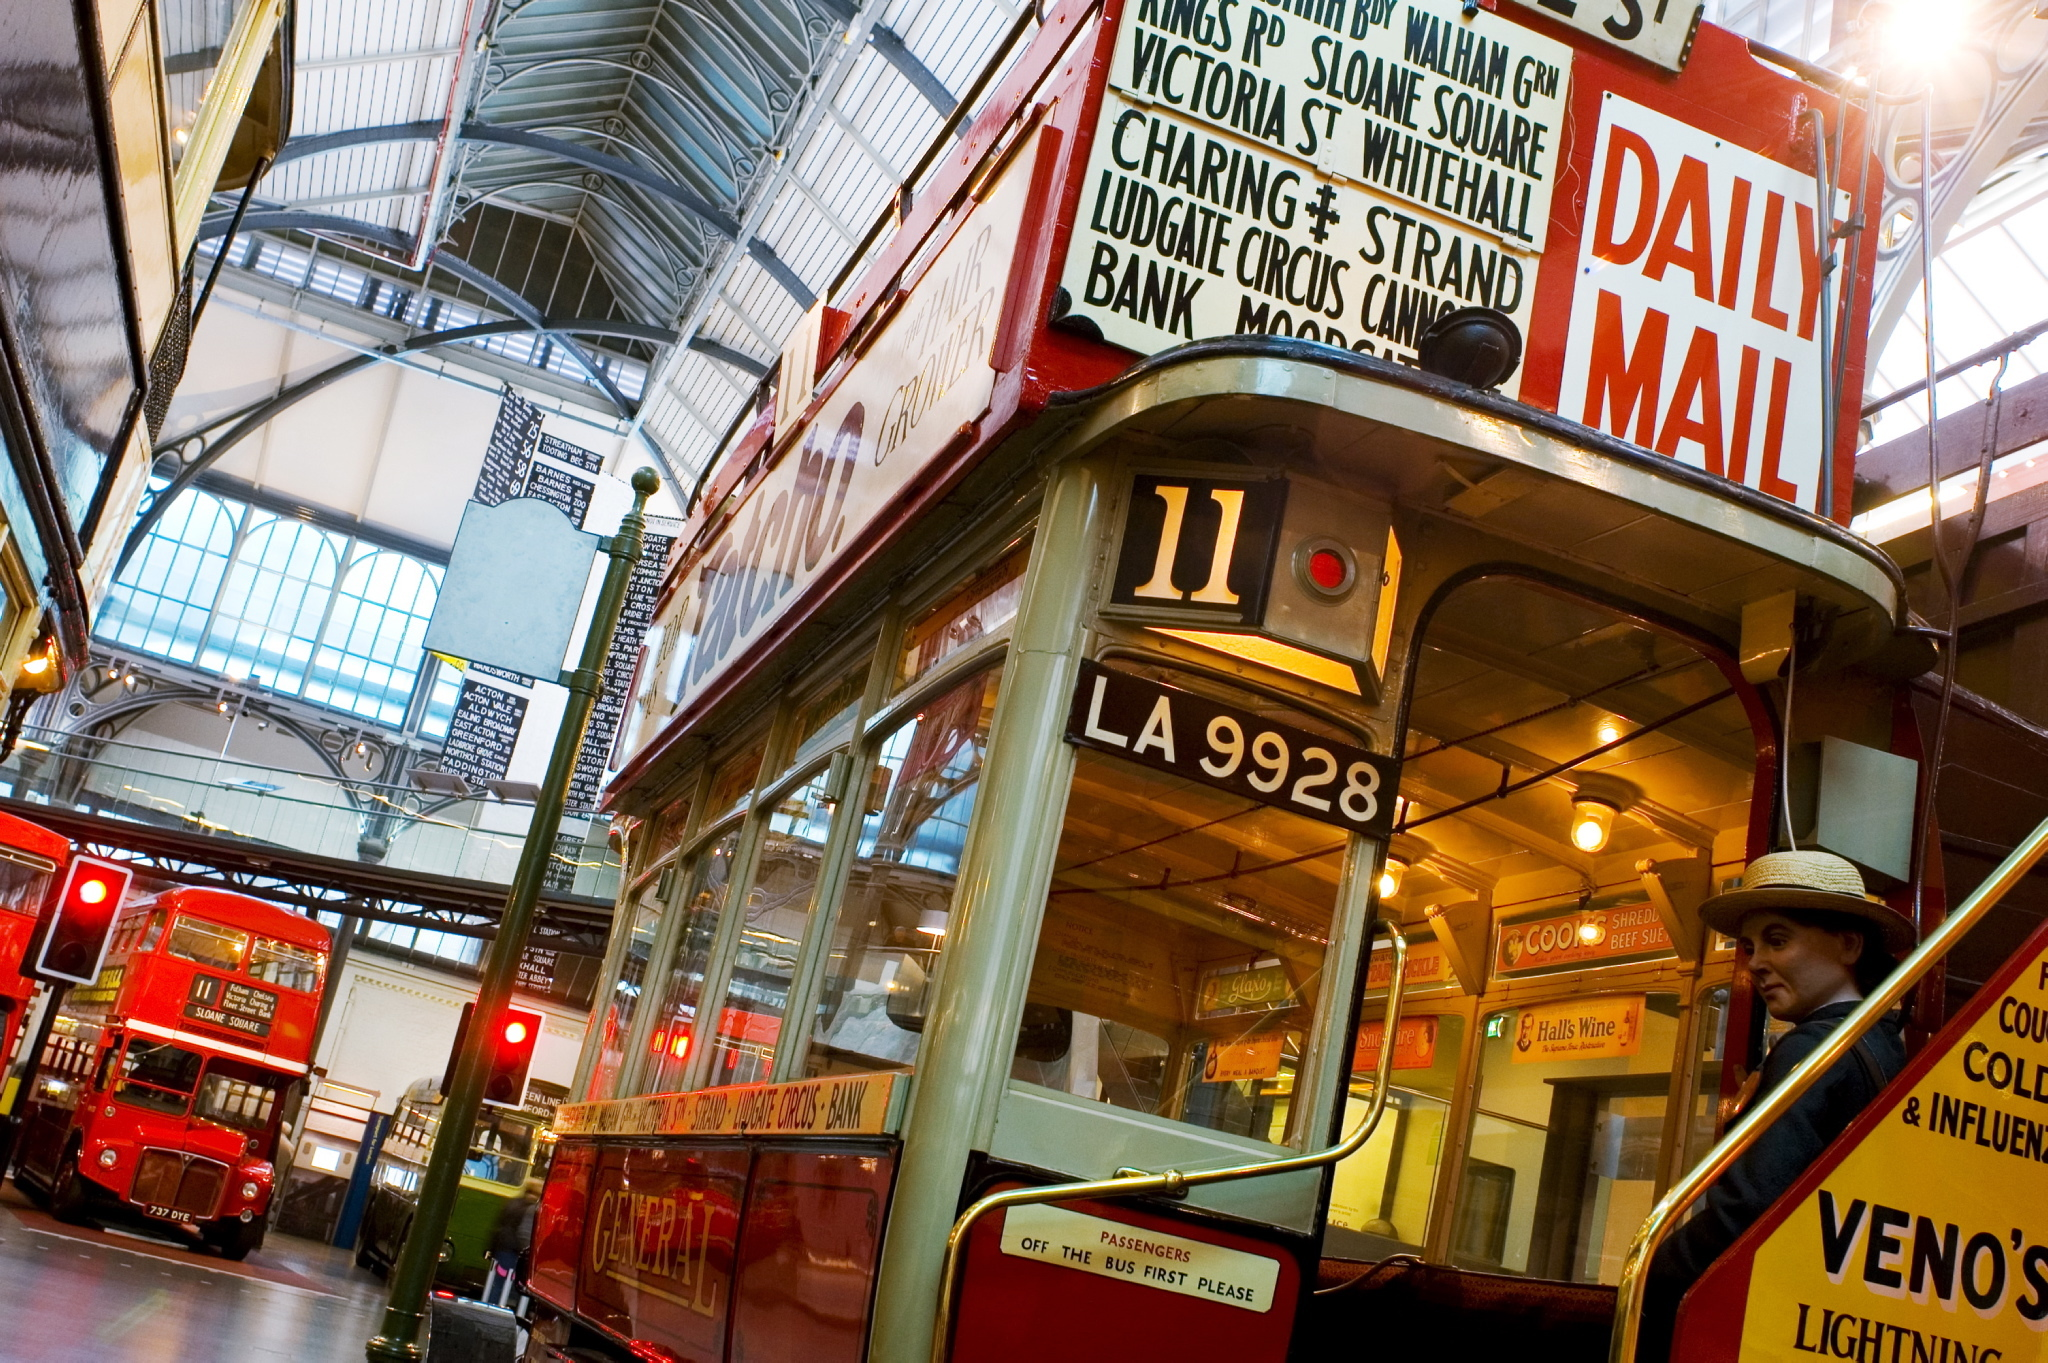 Revisit the Routemaster at the London Transport Museum